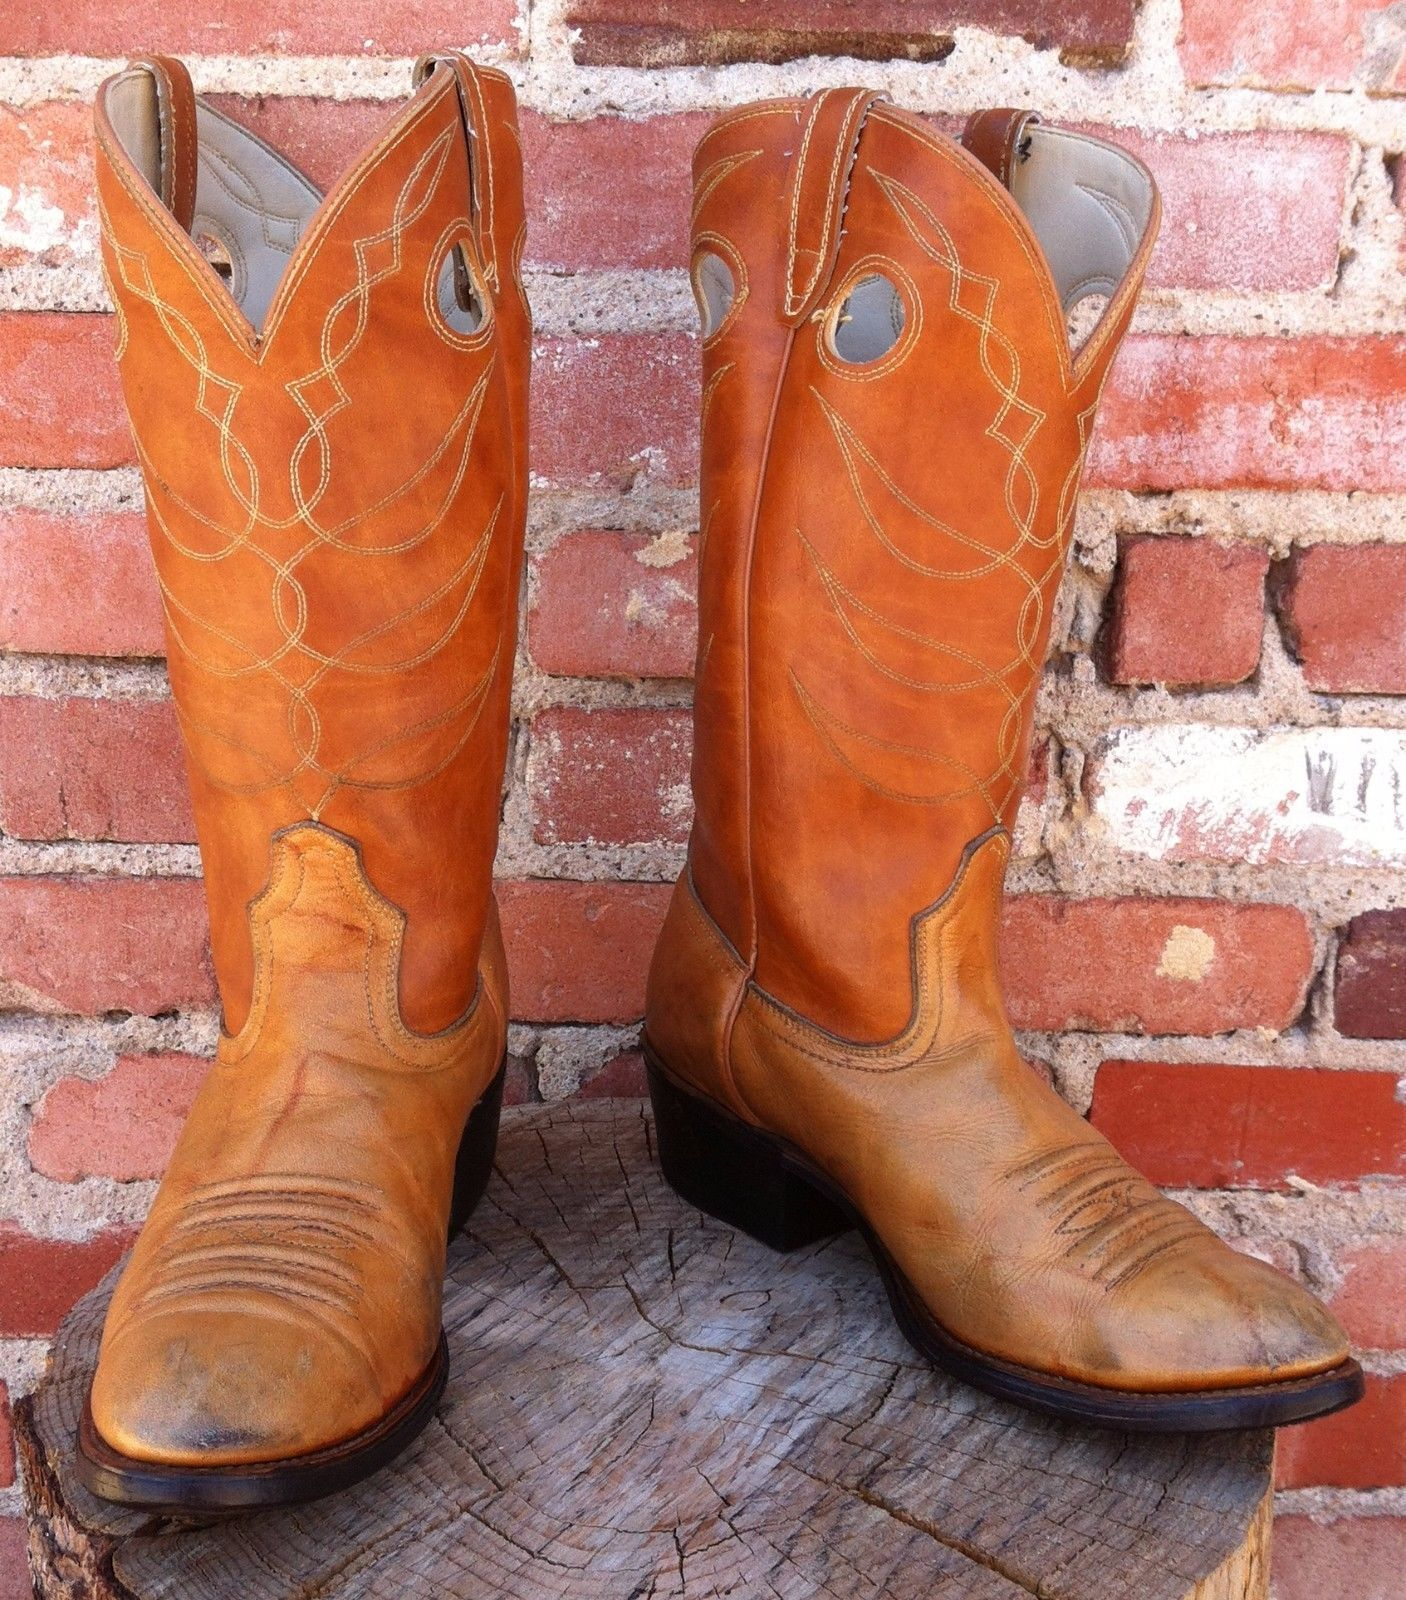 ACME Made in U.S.A.  Buttercup Africa Cowhide Cowboy Boots. Vintage  Men's 9.5D